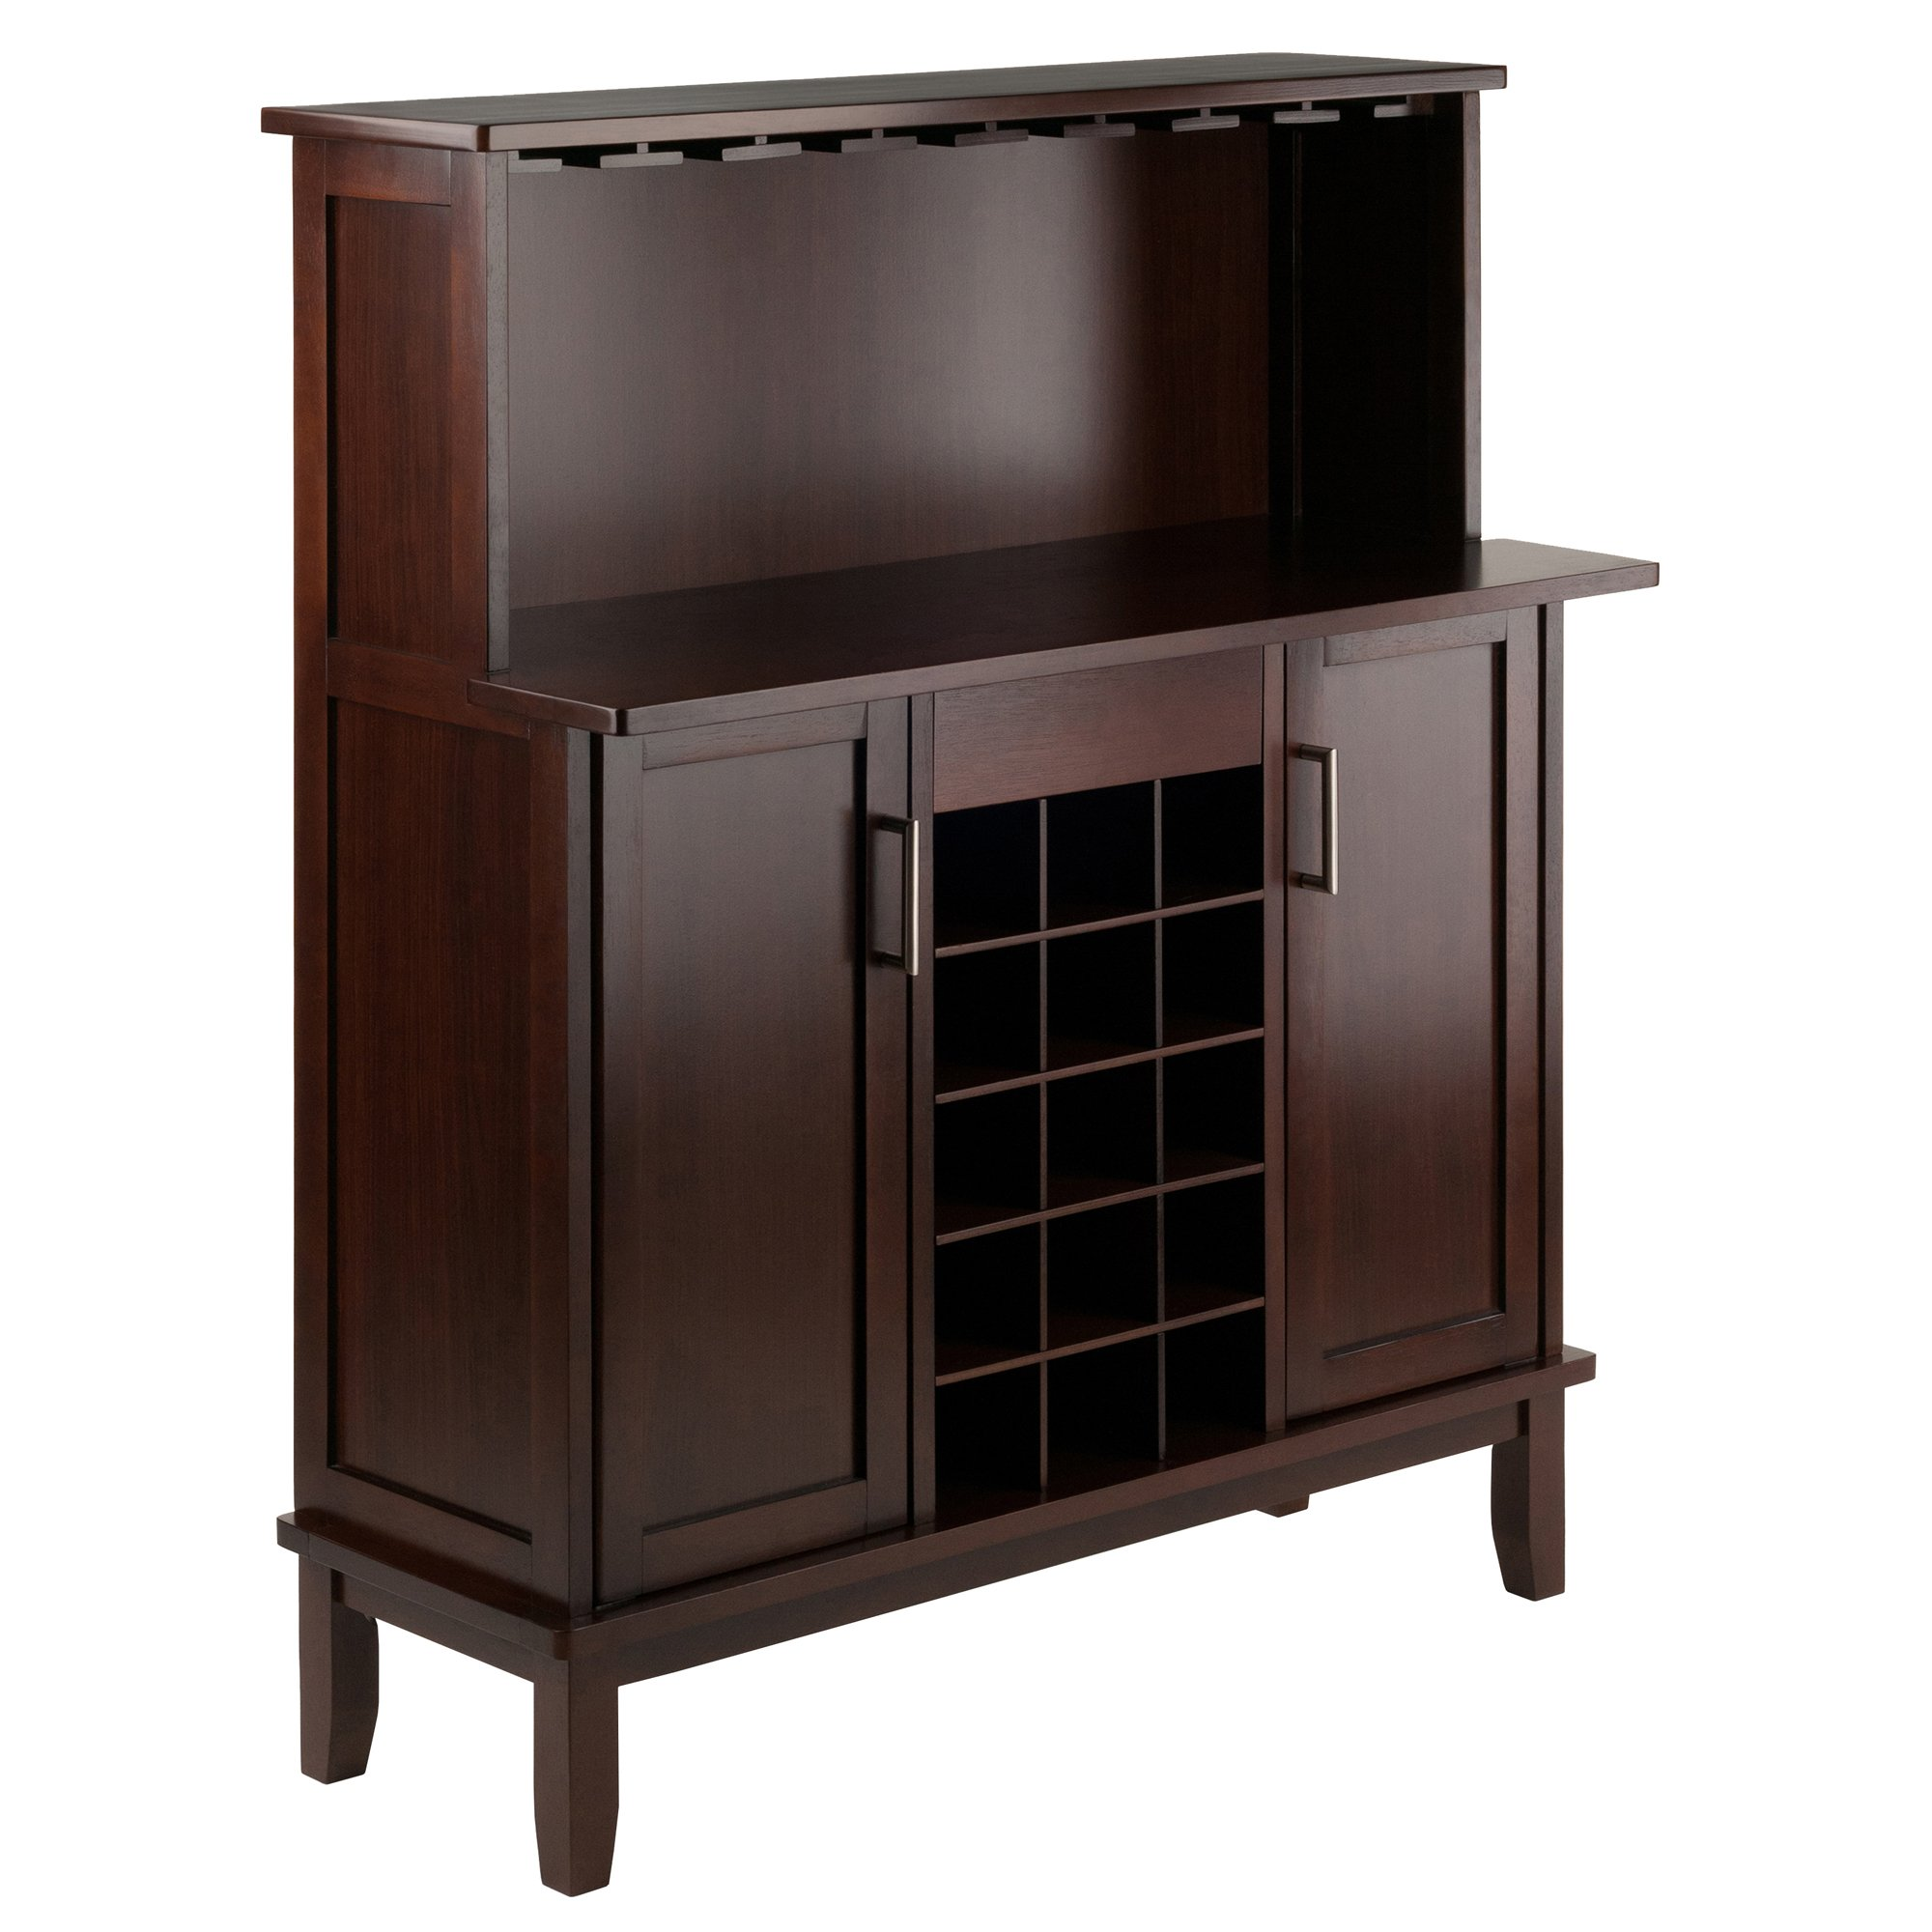 Winsome 40339 Beynac Bar Cappuccino Wine Cabinet by Winsome